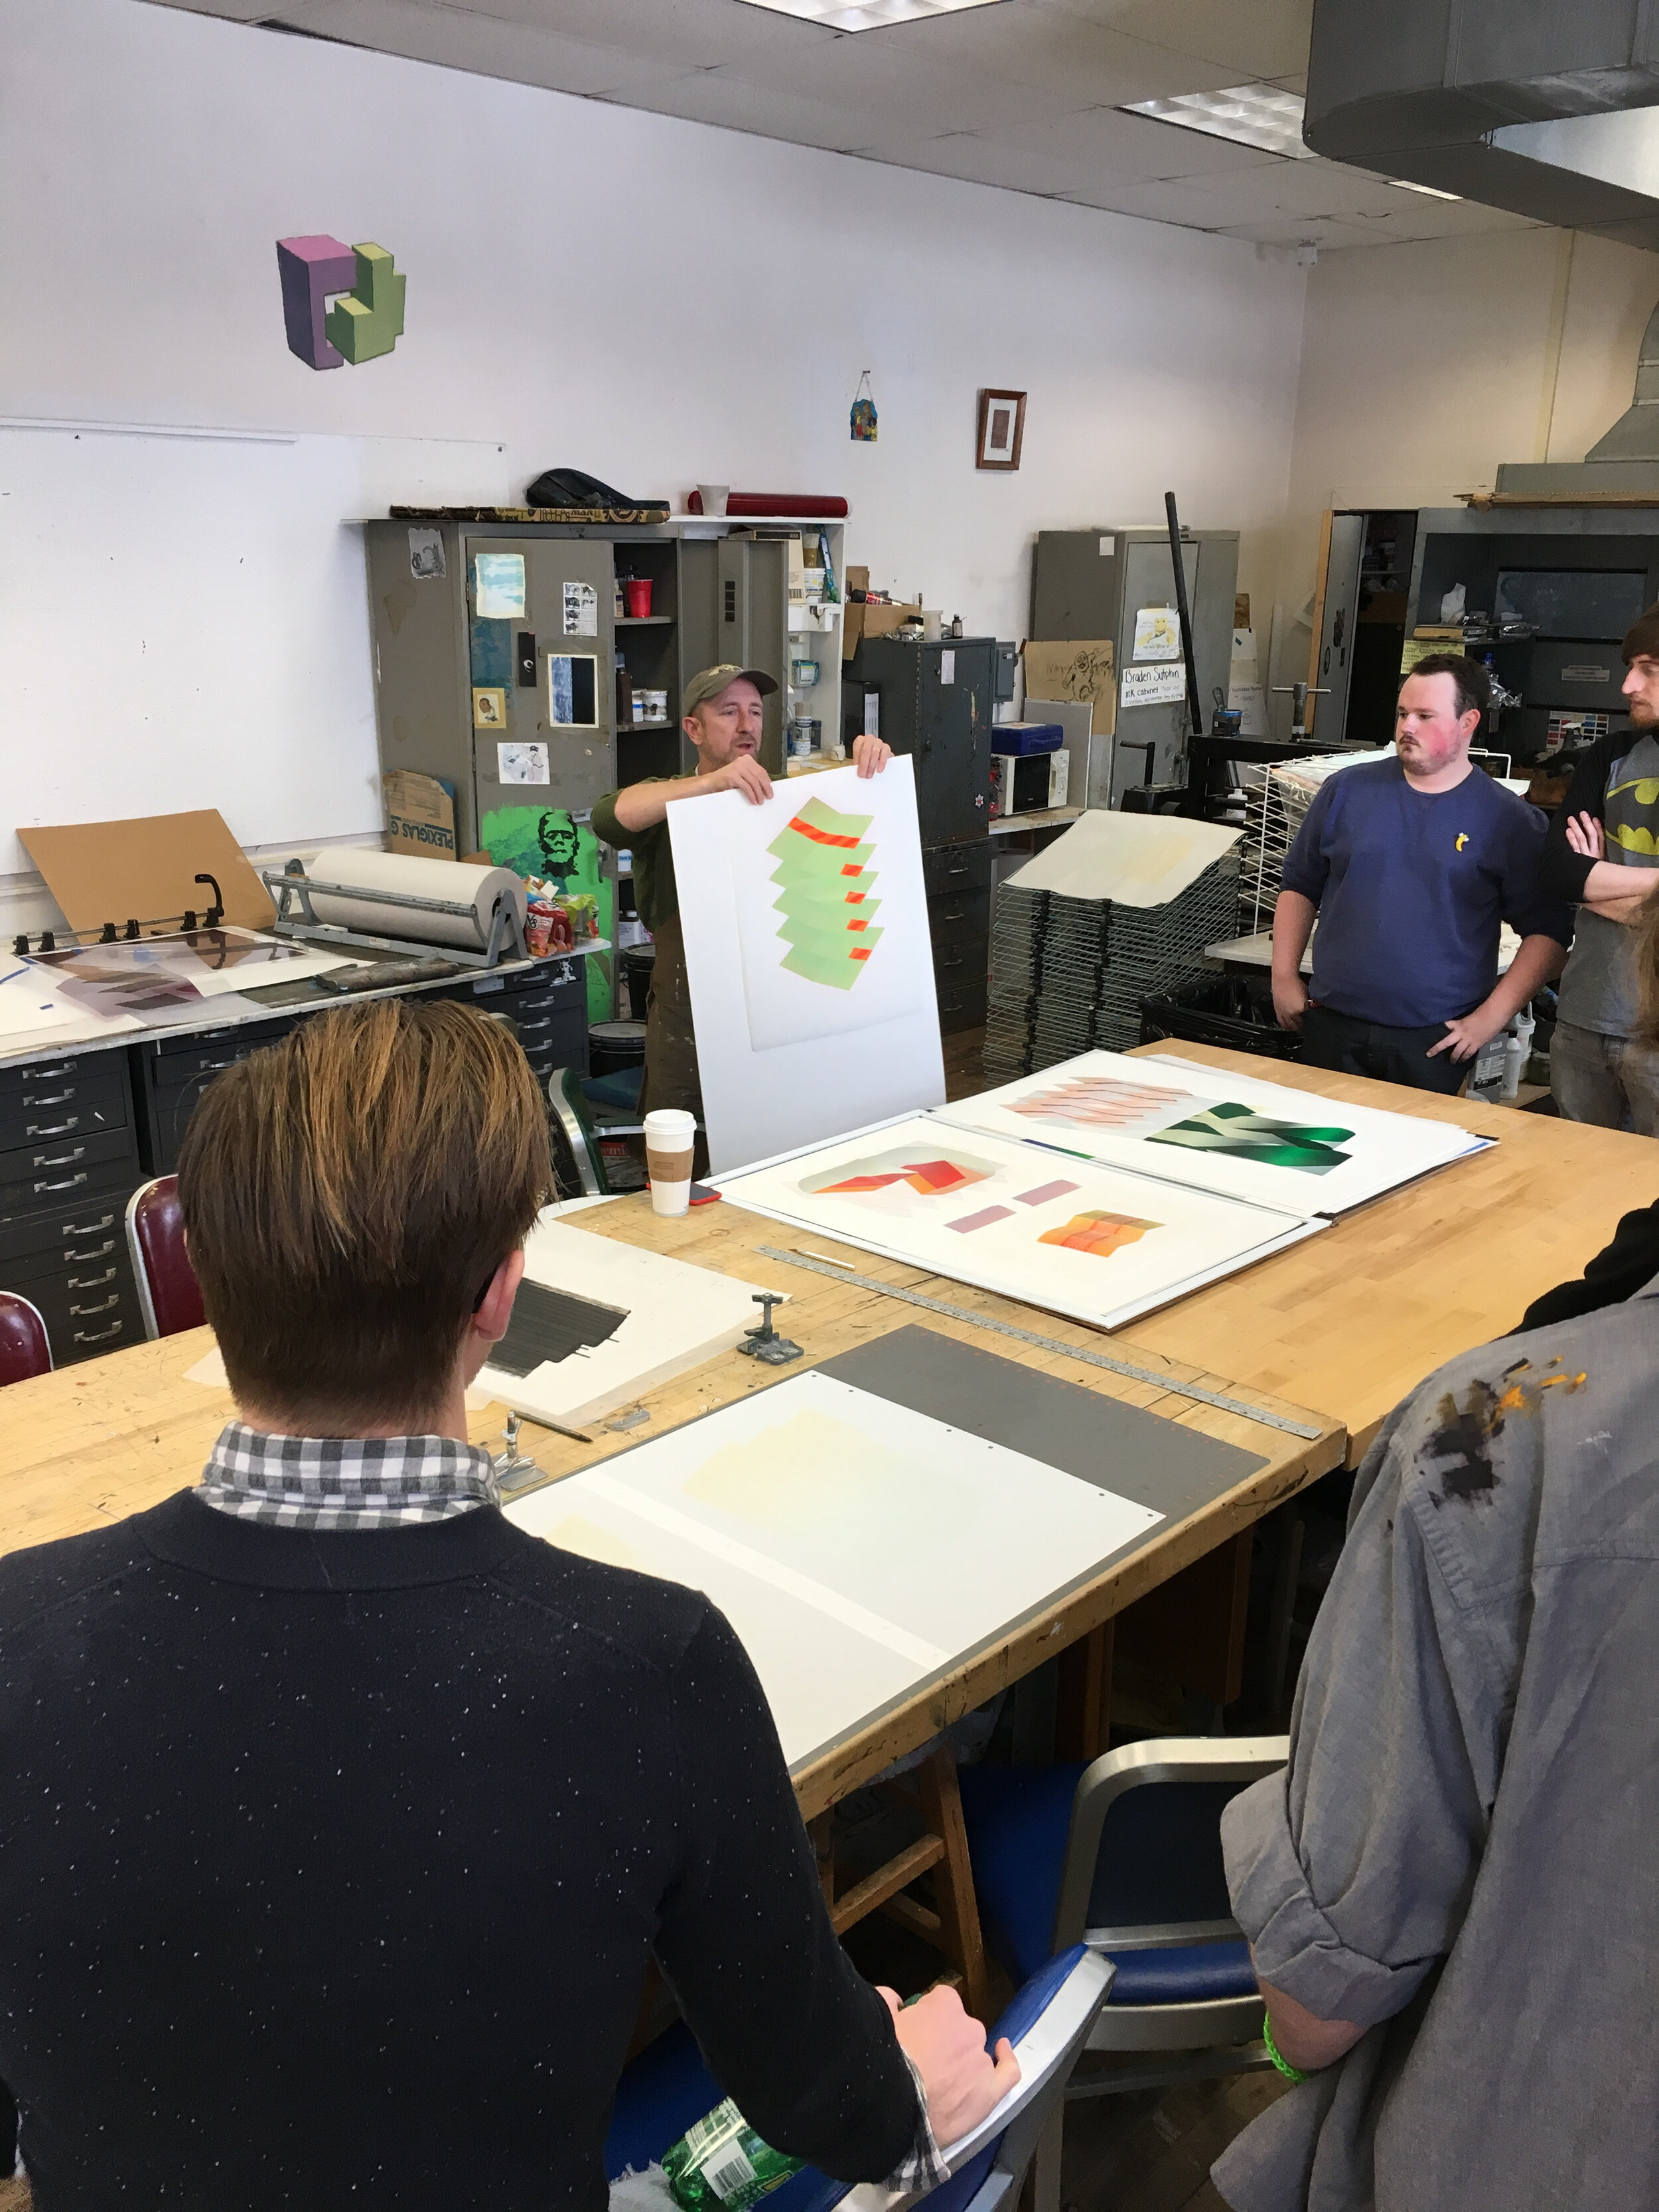 Visiting artist Jeffrey Dell sharing prints with students.